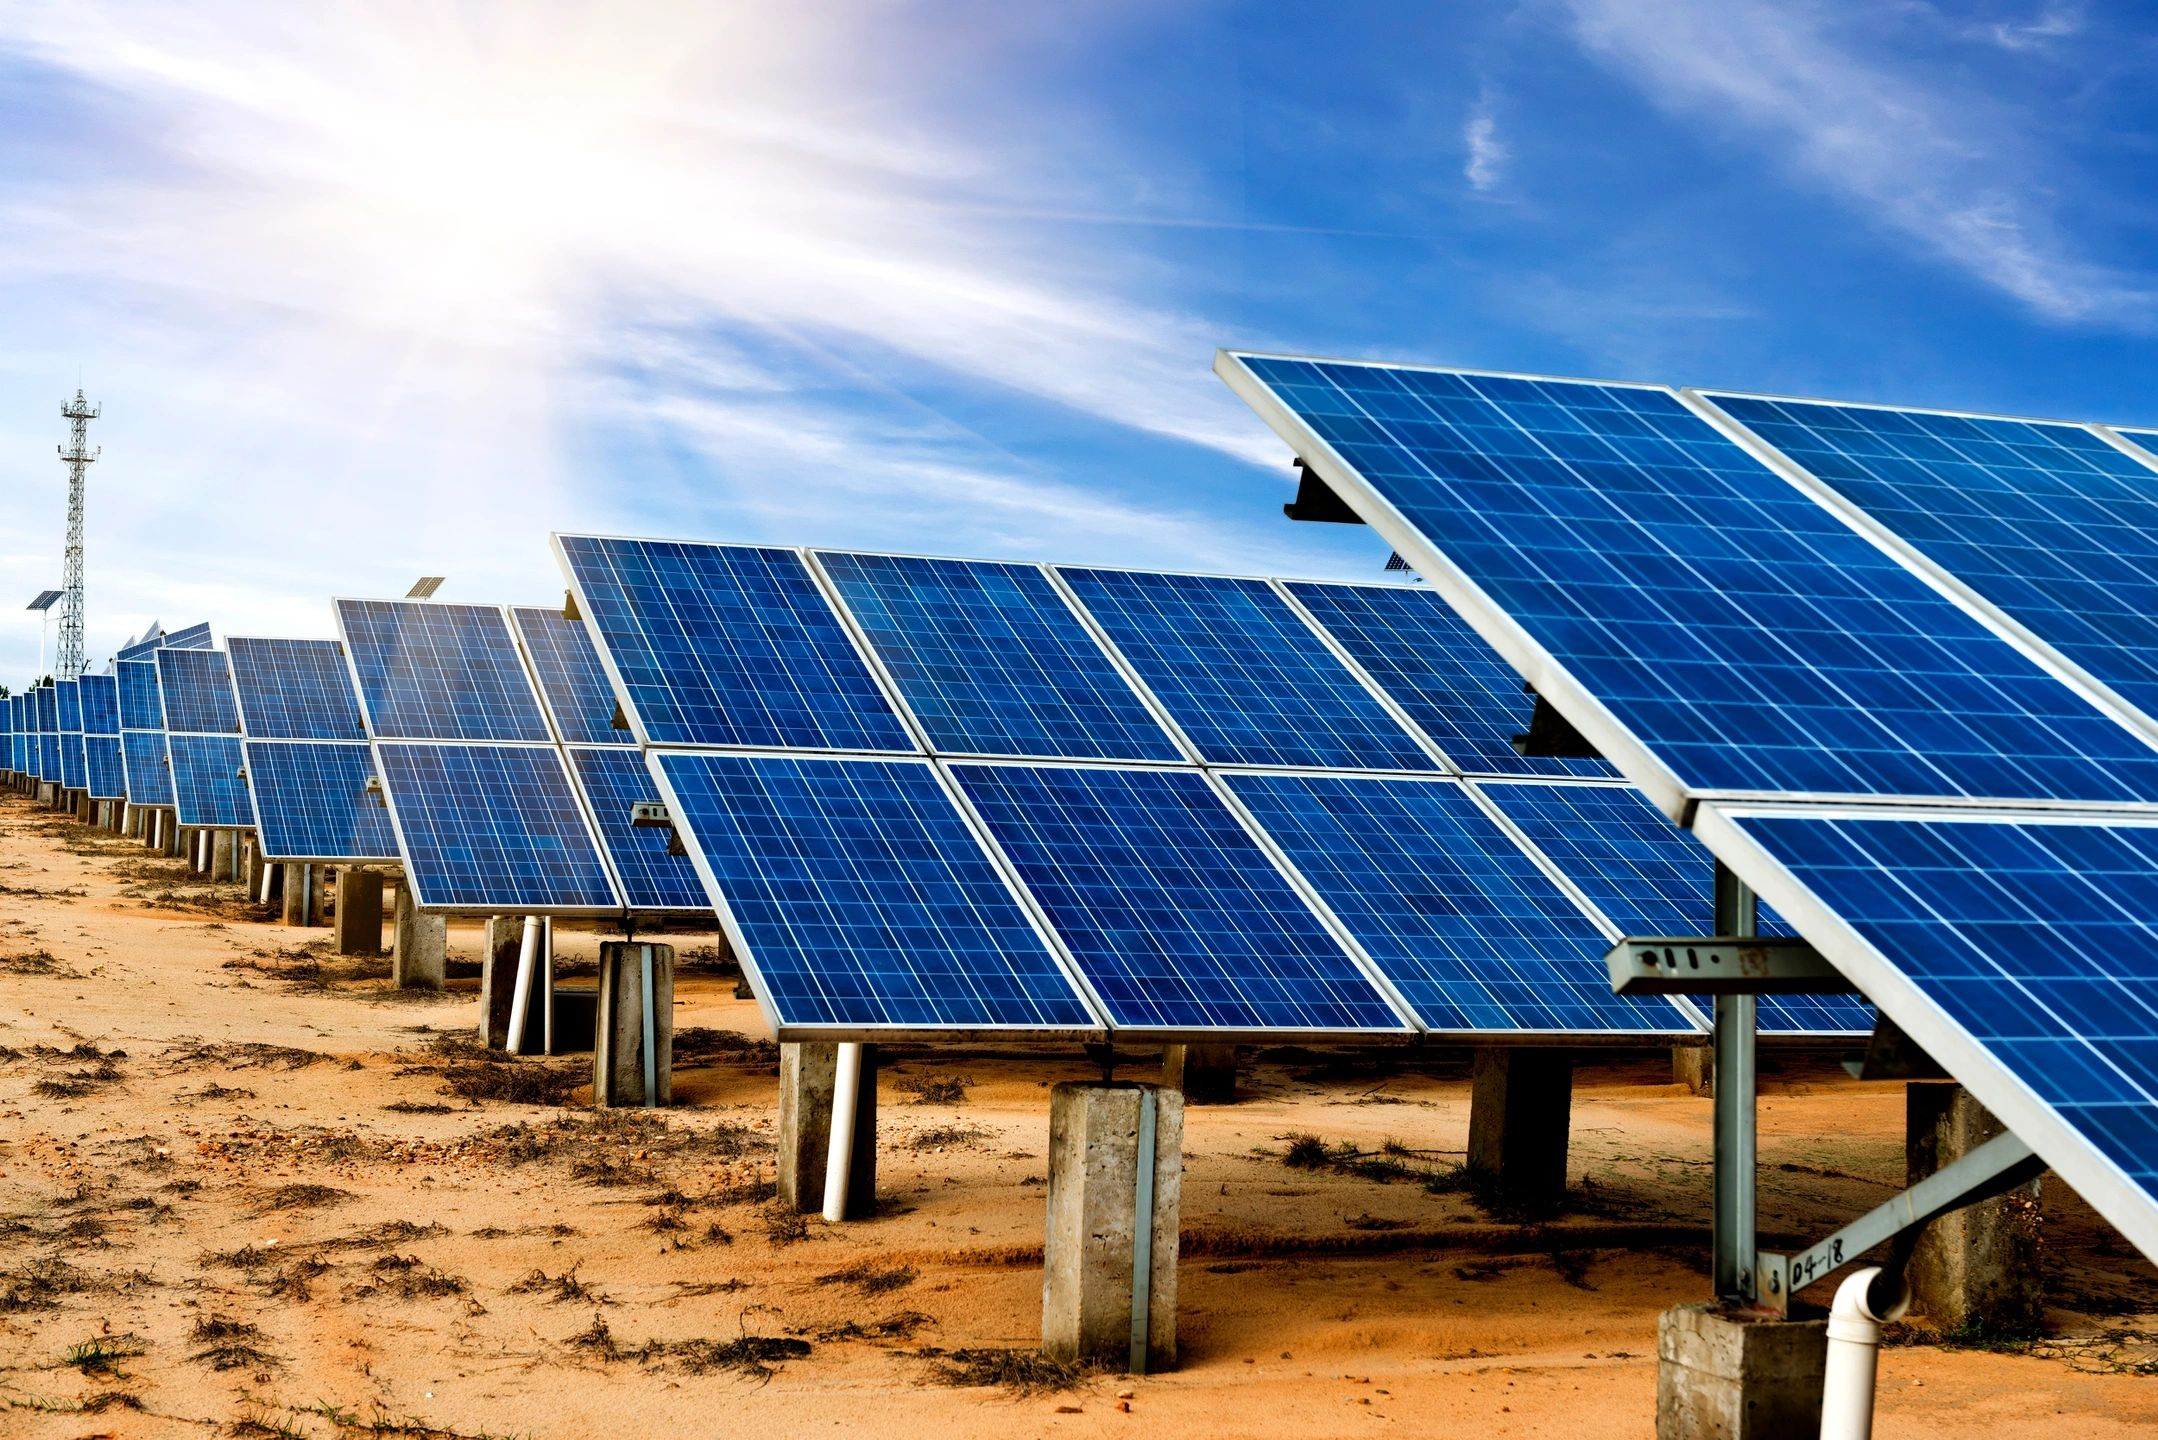 SALIENT PROVISIONS AND INCENTIVES OF REPUBLIC ACT (RA) 9513: THE RENEWABLE ENERGY ACT OF 2008